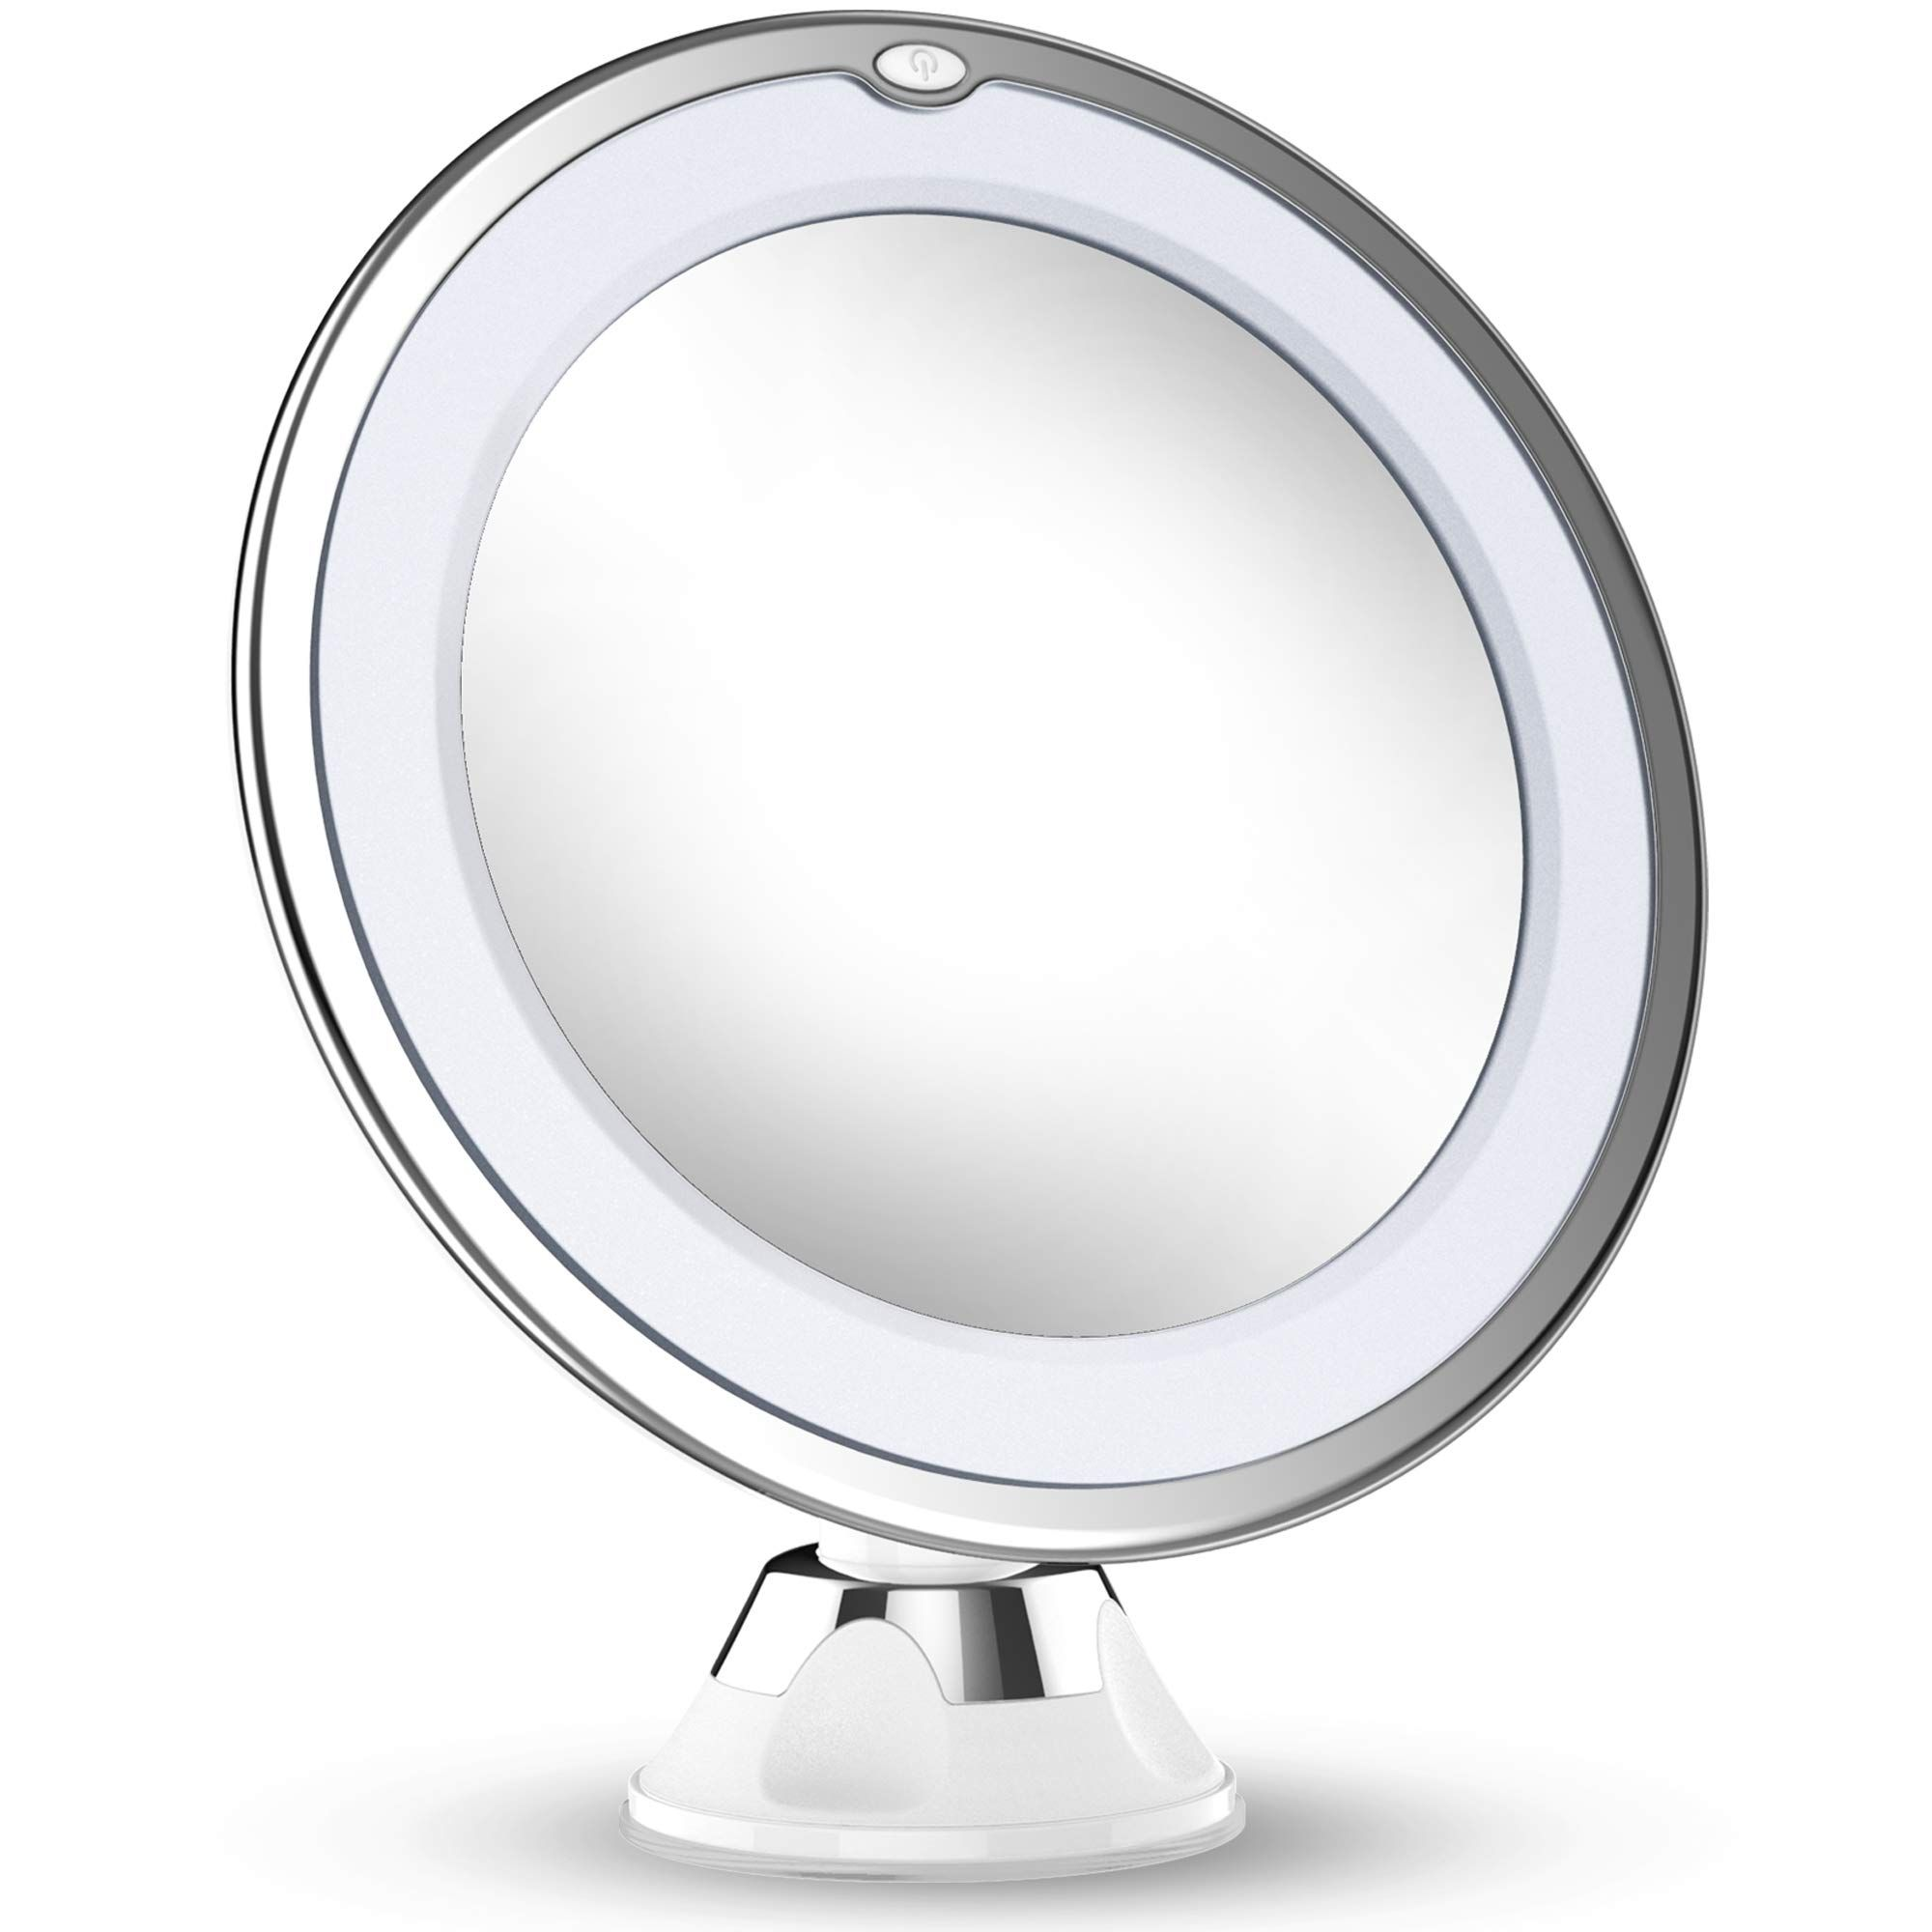 Updated 2020 Version 10x Magnifying Makeup Mirror With Lights Led Lighted Portable Ha In 2020 Makeup Vanity Mirror With Lights Makeup Mirror With Lights Makeup Mirror